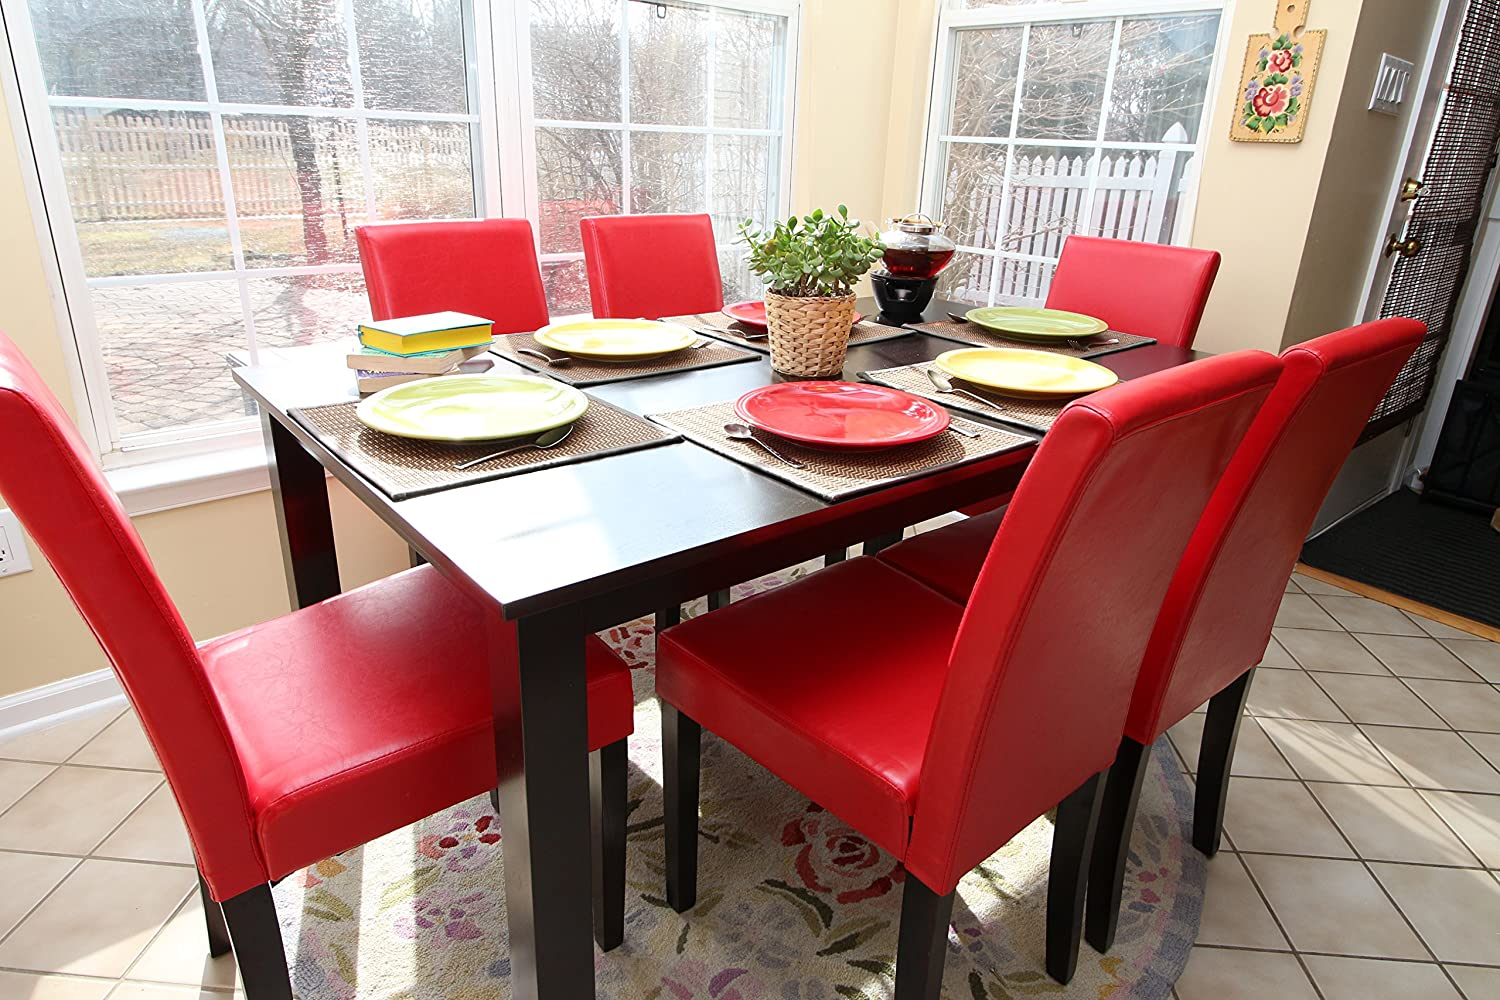 Amazon com   7 pc Red Leather 6 Person Table and Chairs red Dining Dinette    Red Parson Chair   Table   Chair SetsAmazon com   7 pc Red Leather 6 Person Table and Chairs red Dining  . Dining Table And 6 Red Leather Chairs. Home Design Ideas